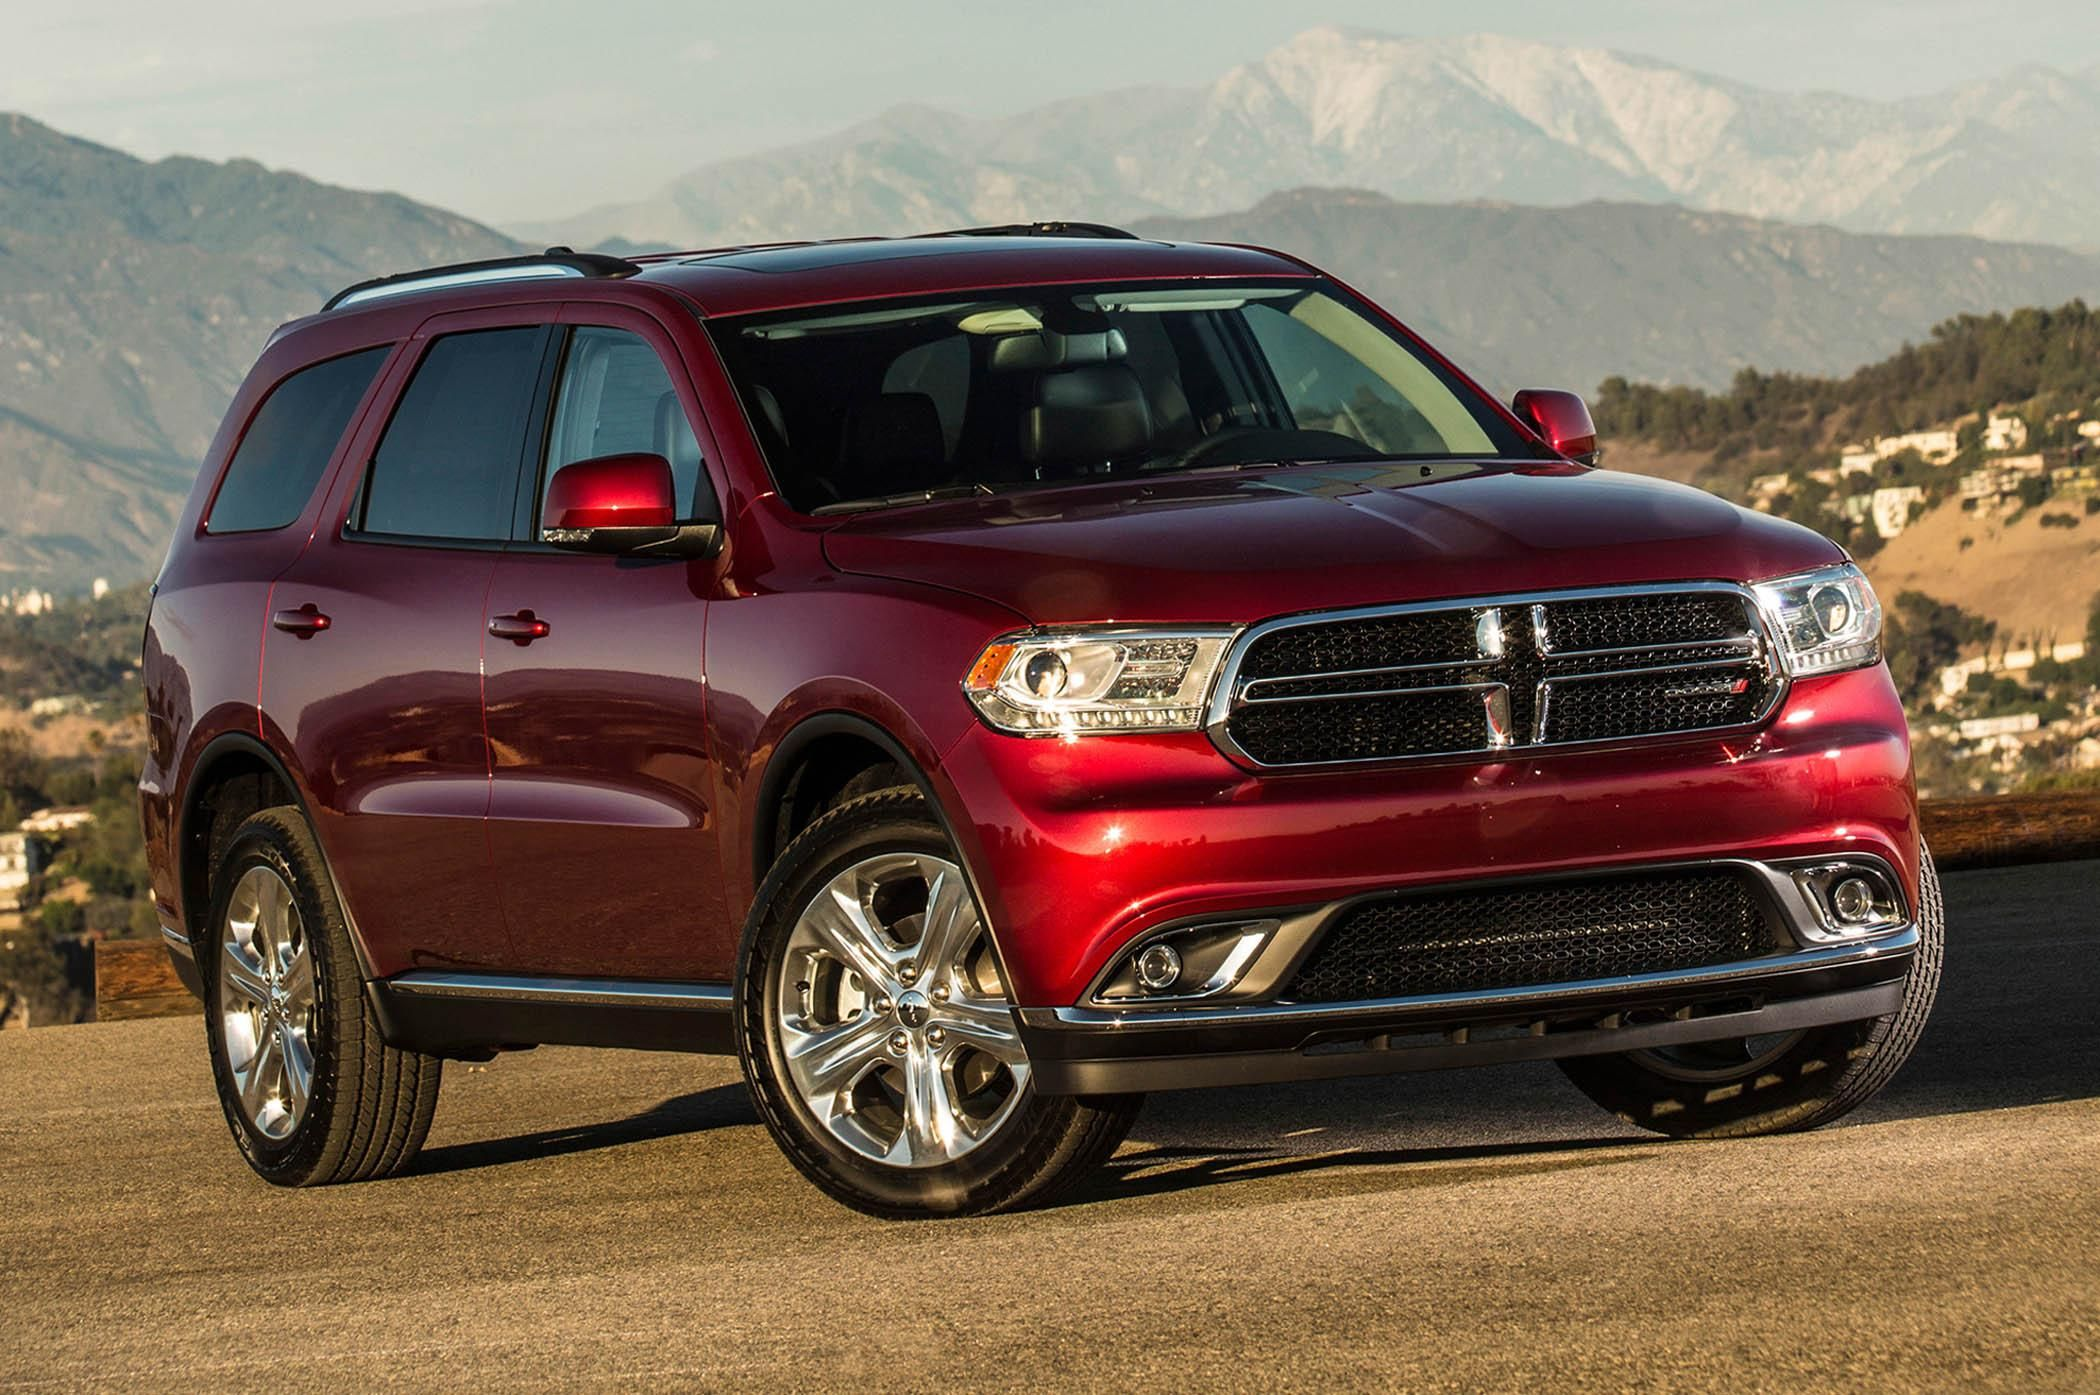 Best of awards coolest suv stance dodge durango rallye and blacktop 2014 dodge durango dodge durango and dodge